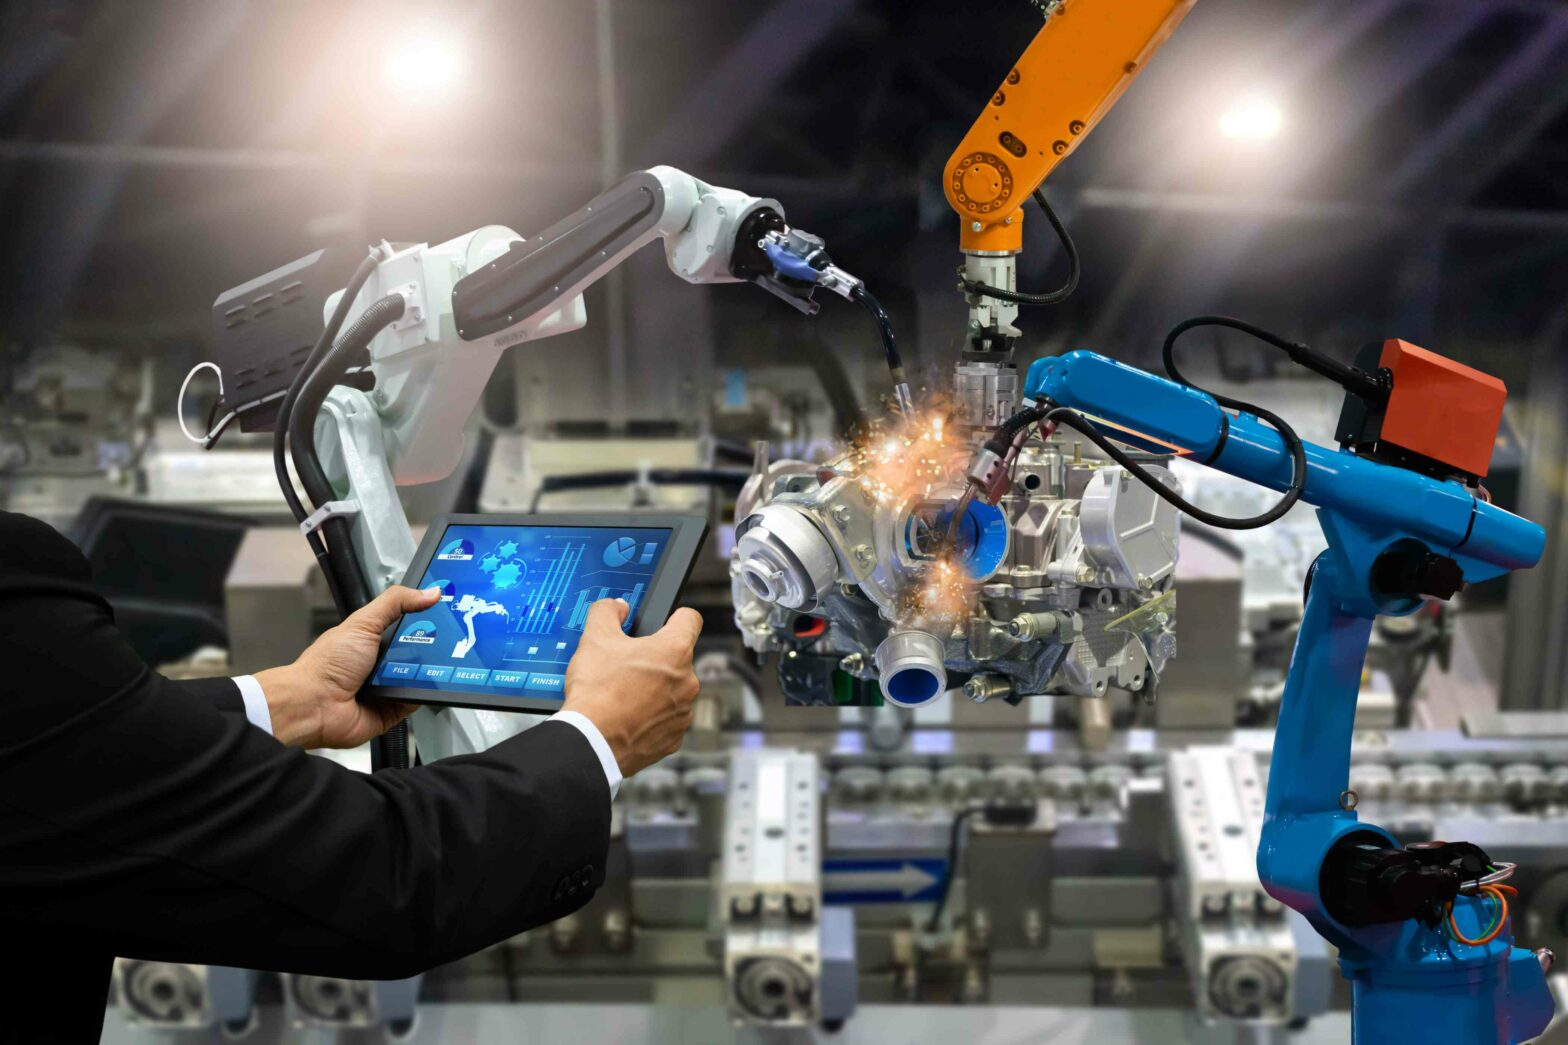 Project Management Software in Automotive OEM industry